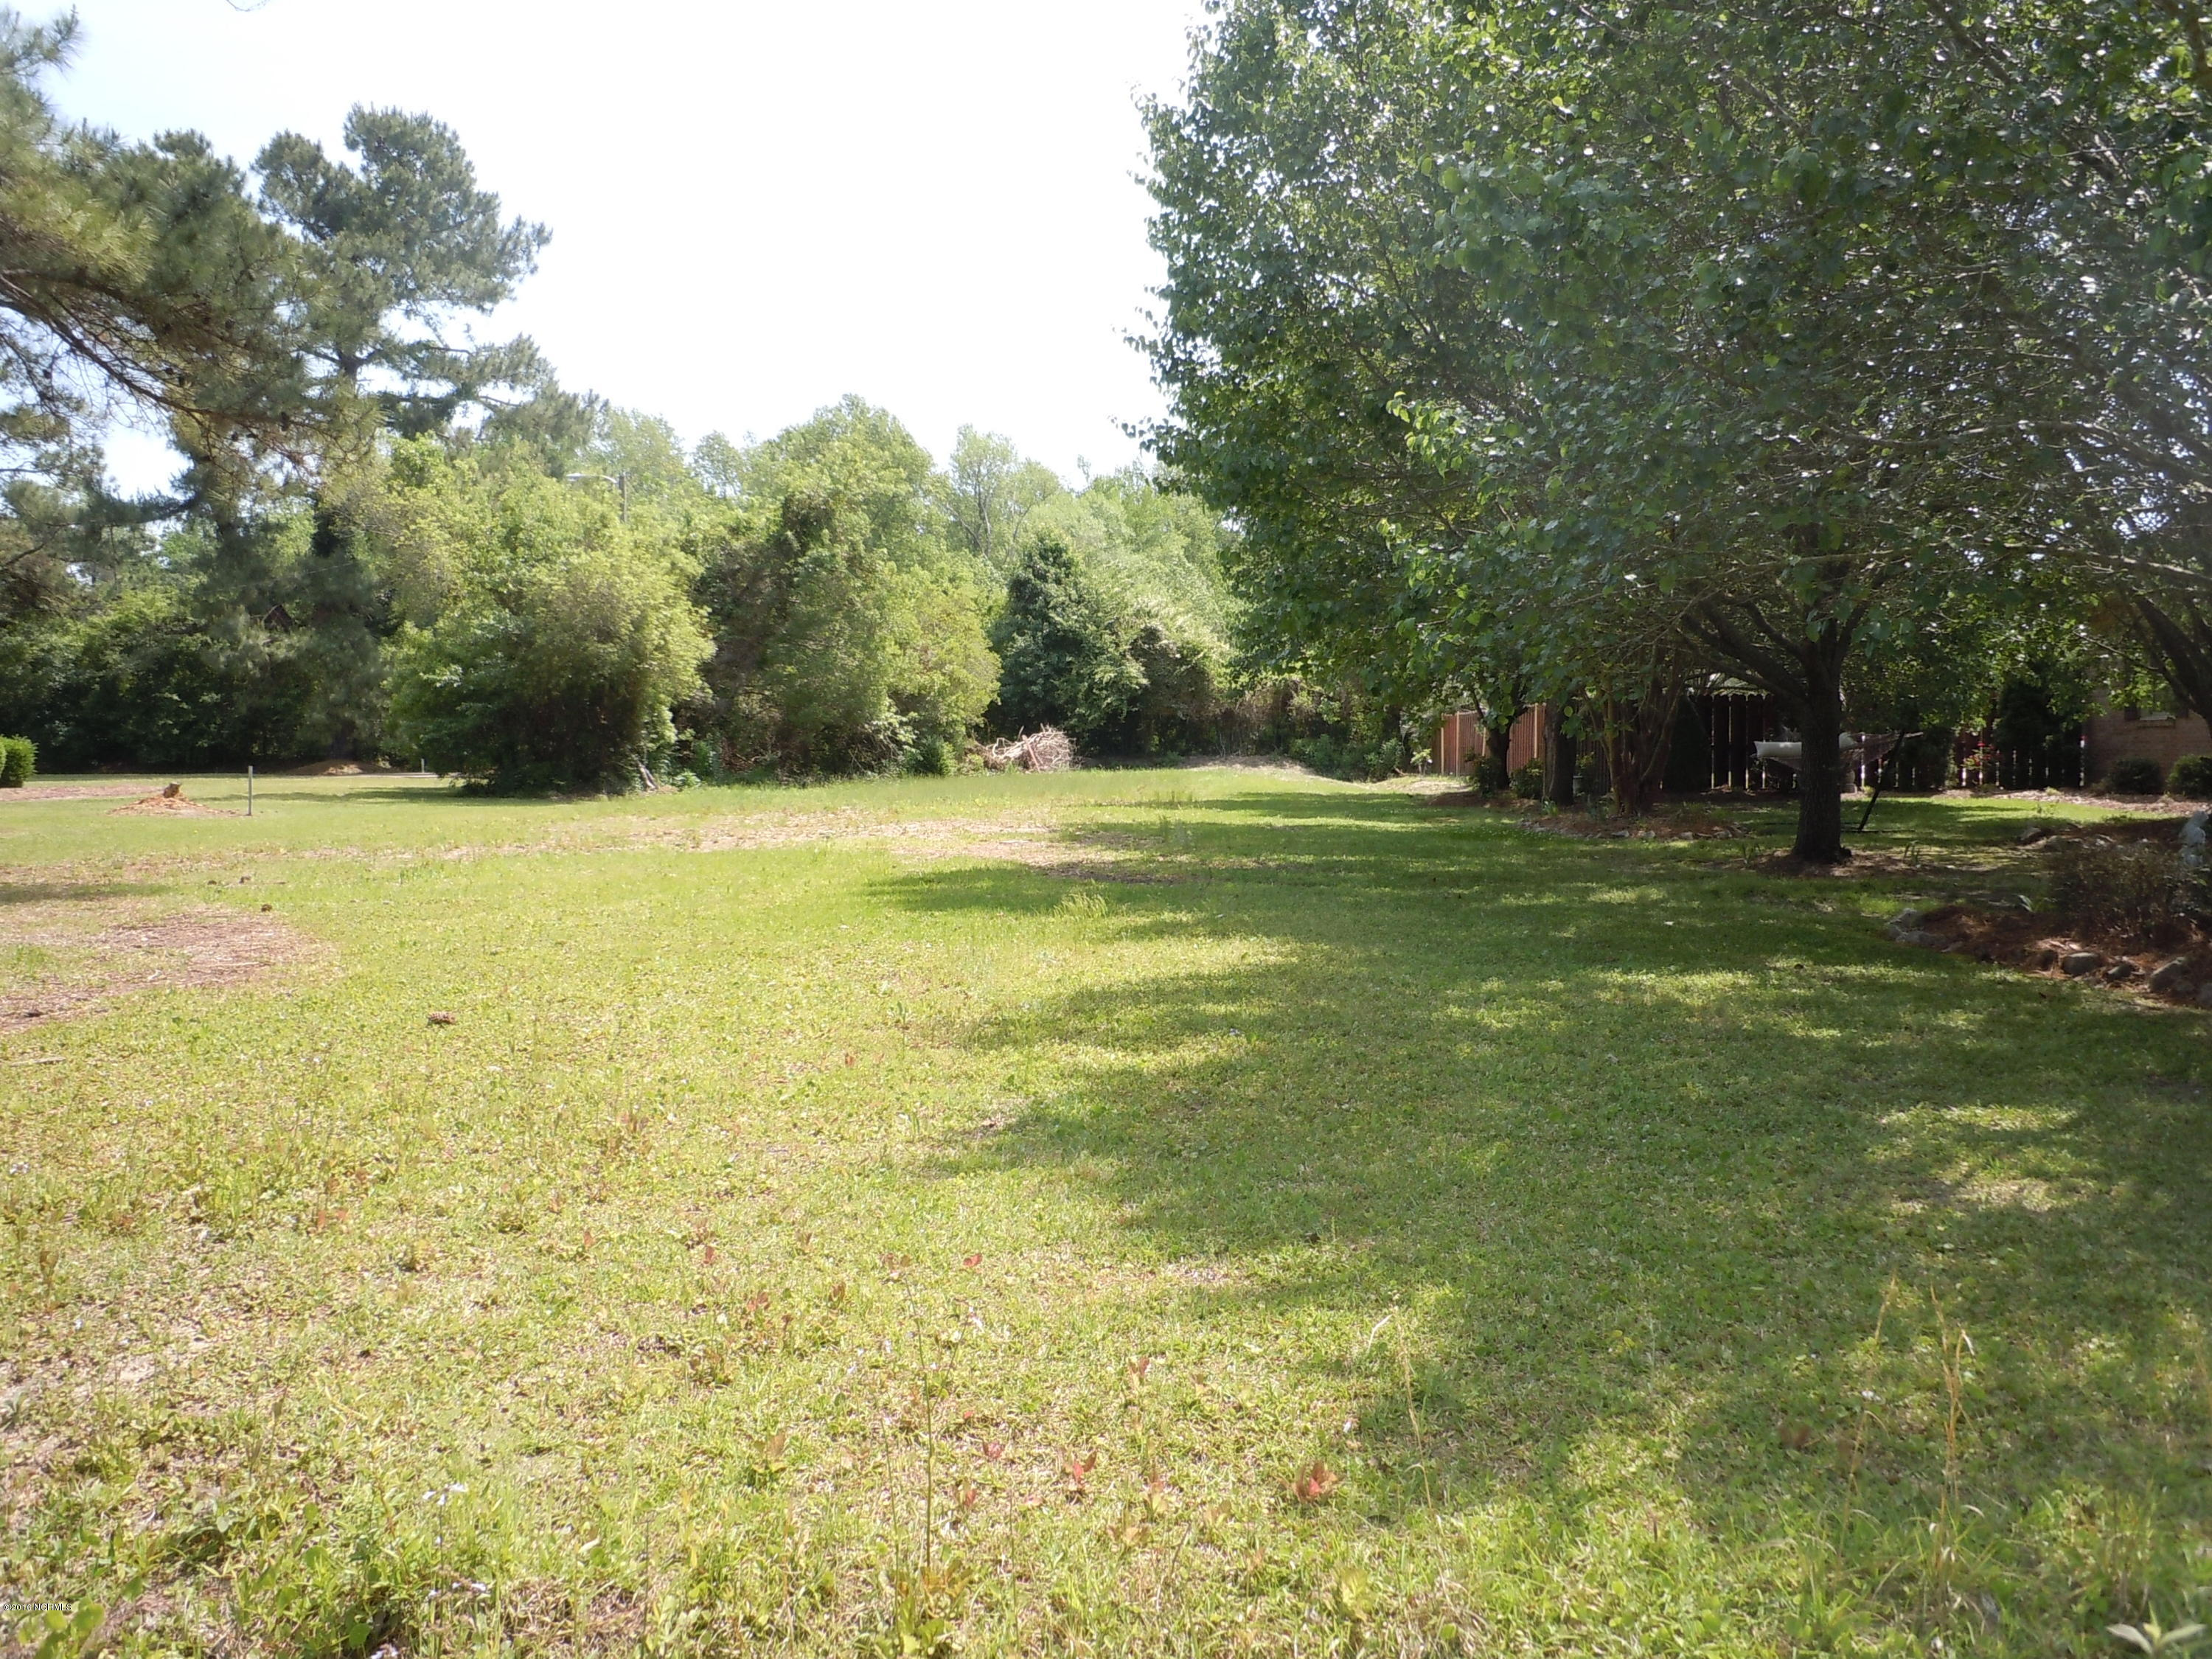 Tbd Brown Maultsby Road, Whiteville, North Carolina 28472, ,Residential land,For sale,Brown Maultsby,100010445